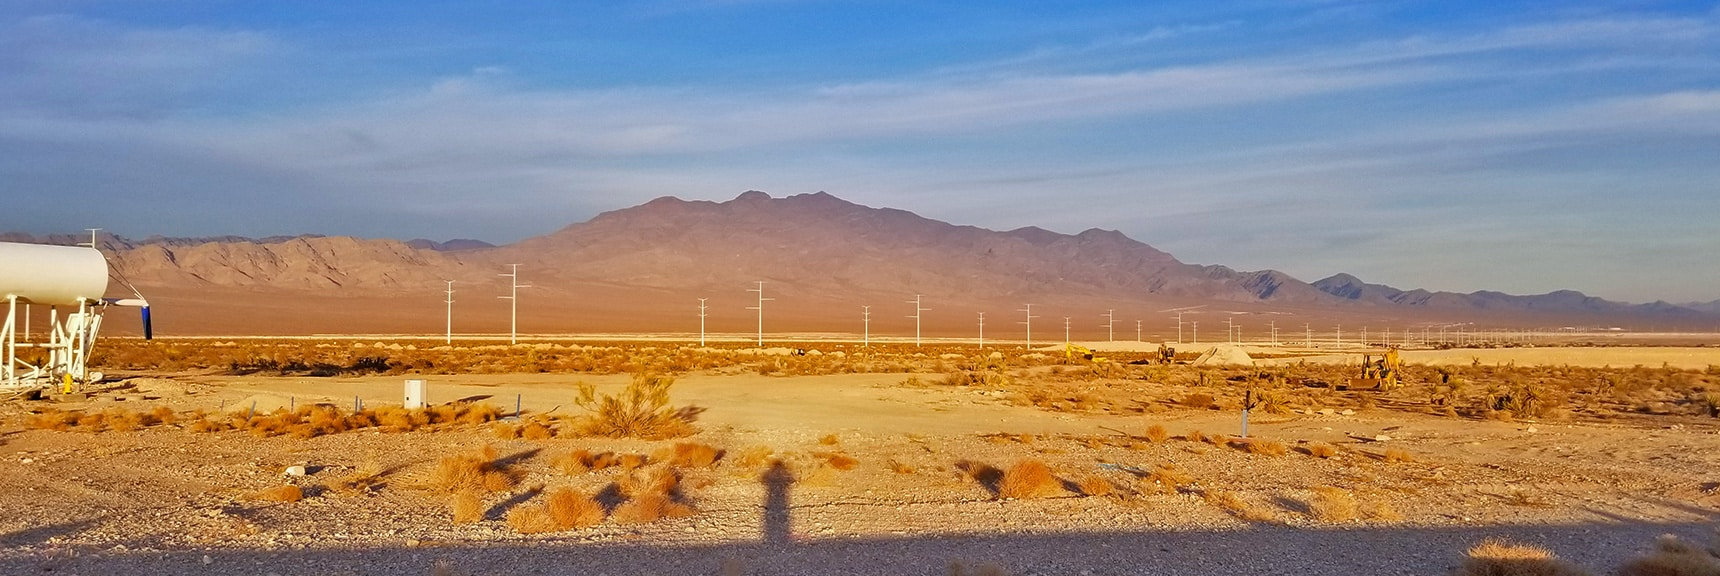 View from Skye Point Dr Toward Gass Peak | Snapshot of Las Vegas Northern Growth Edge on January 3, 2021